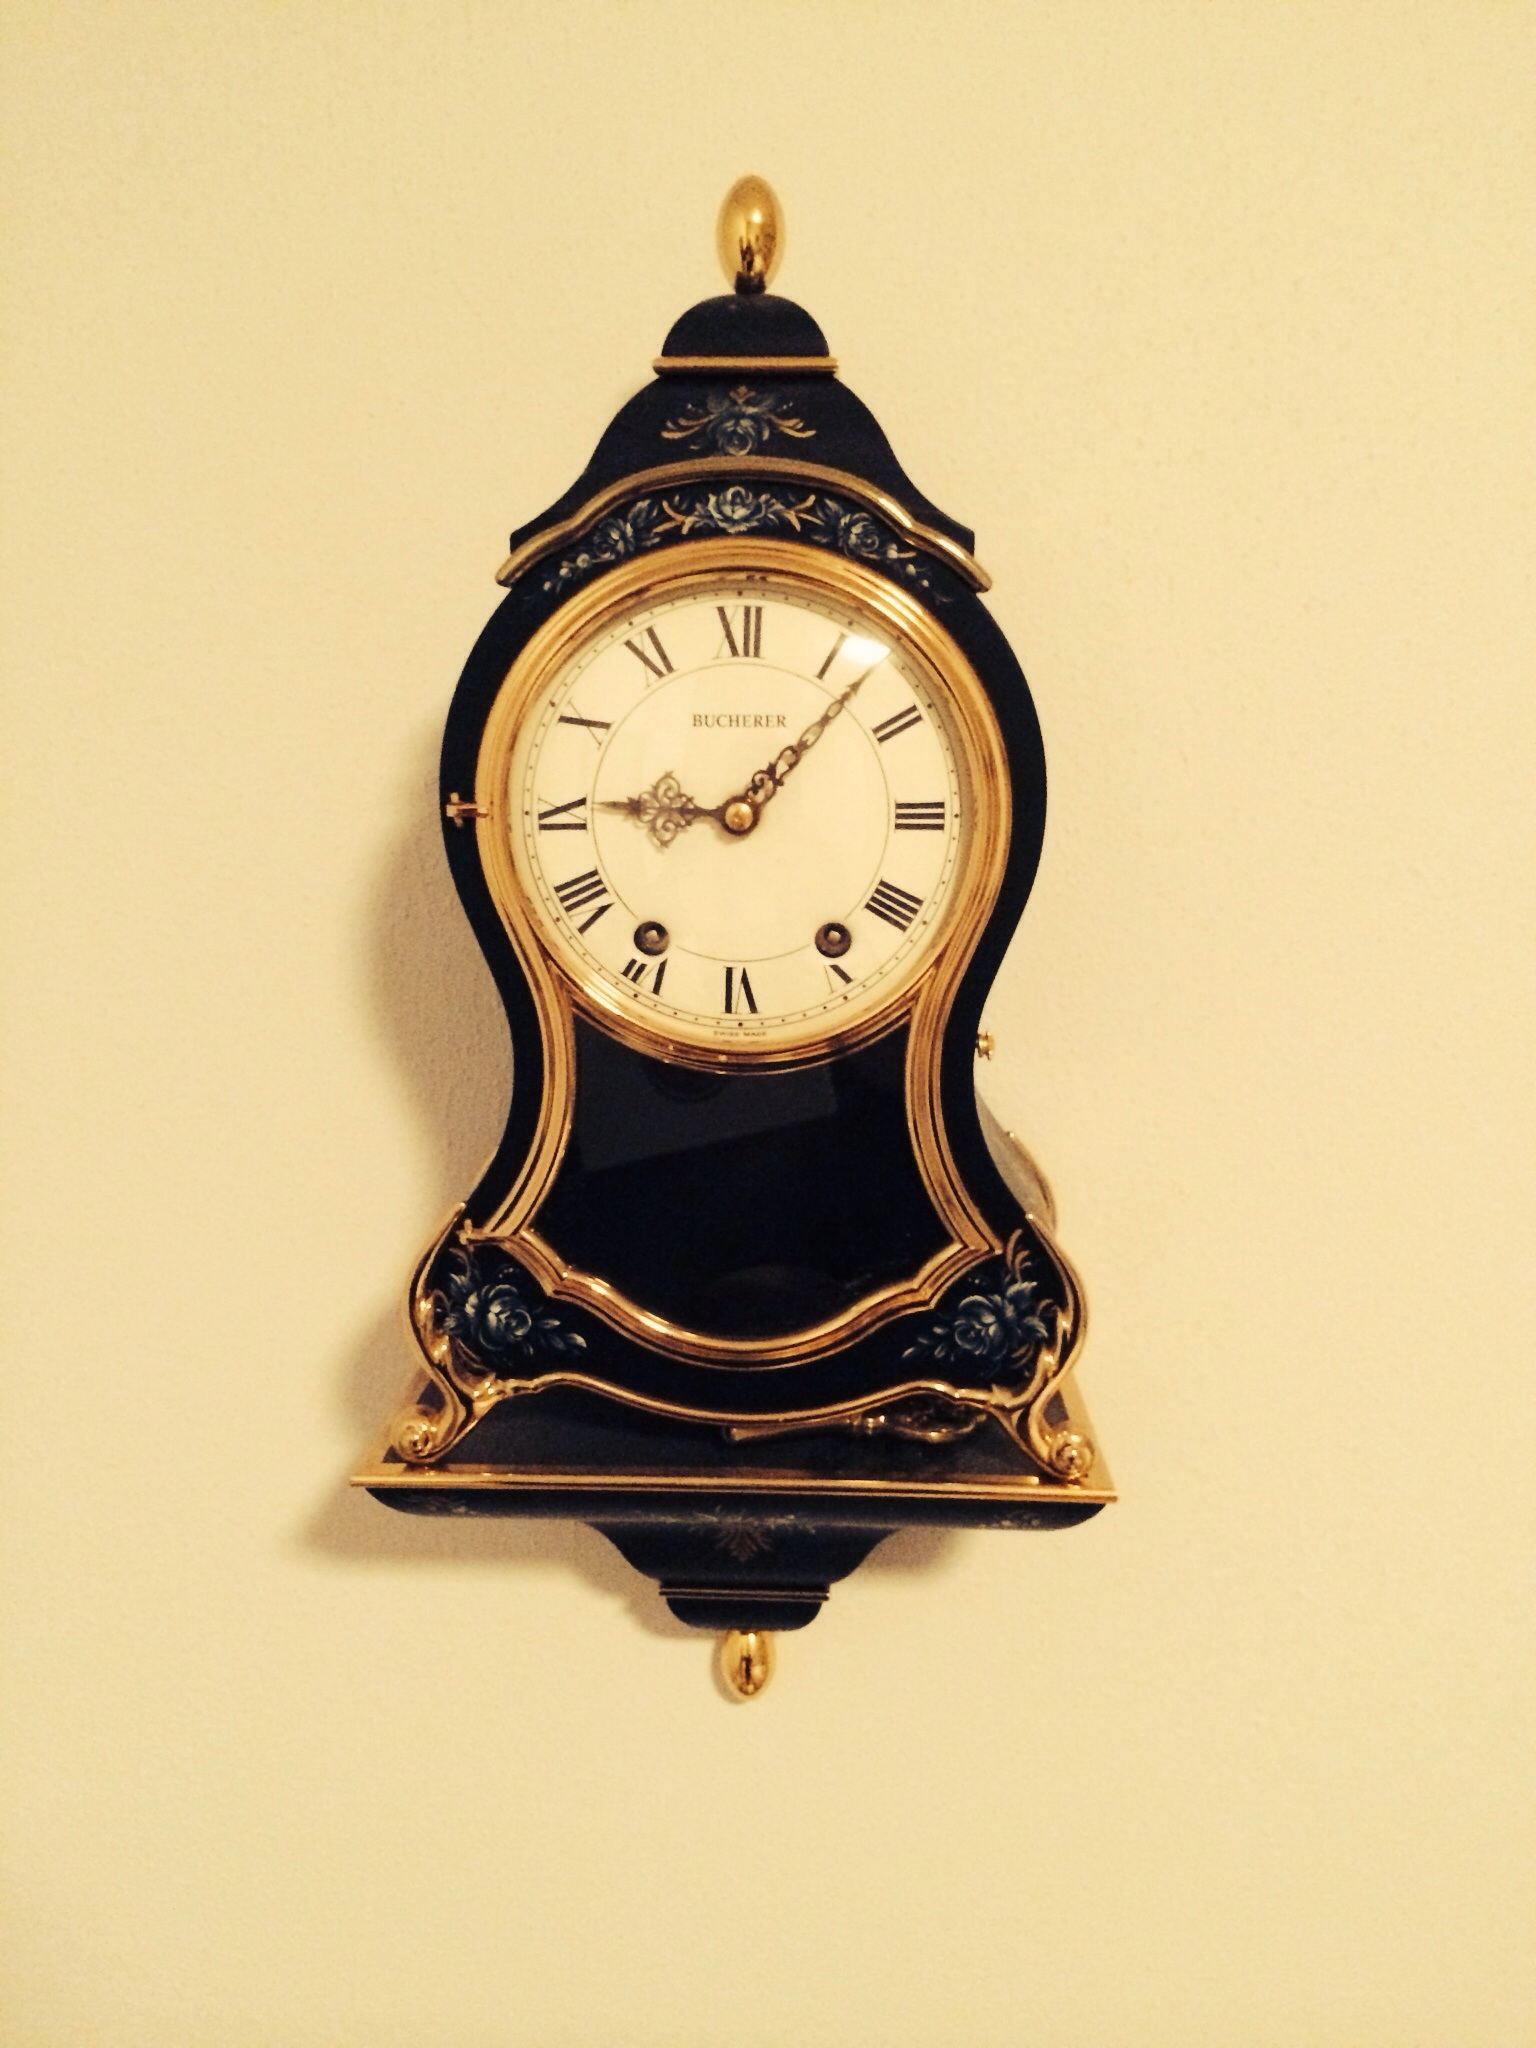 I Am Seeking Info Concerning An Antique Swiss Wall Clock We Believe It To Be Made By Bucherer And Dates To The Late